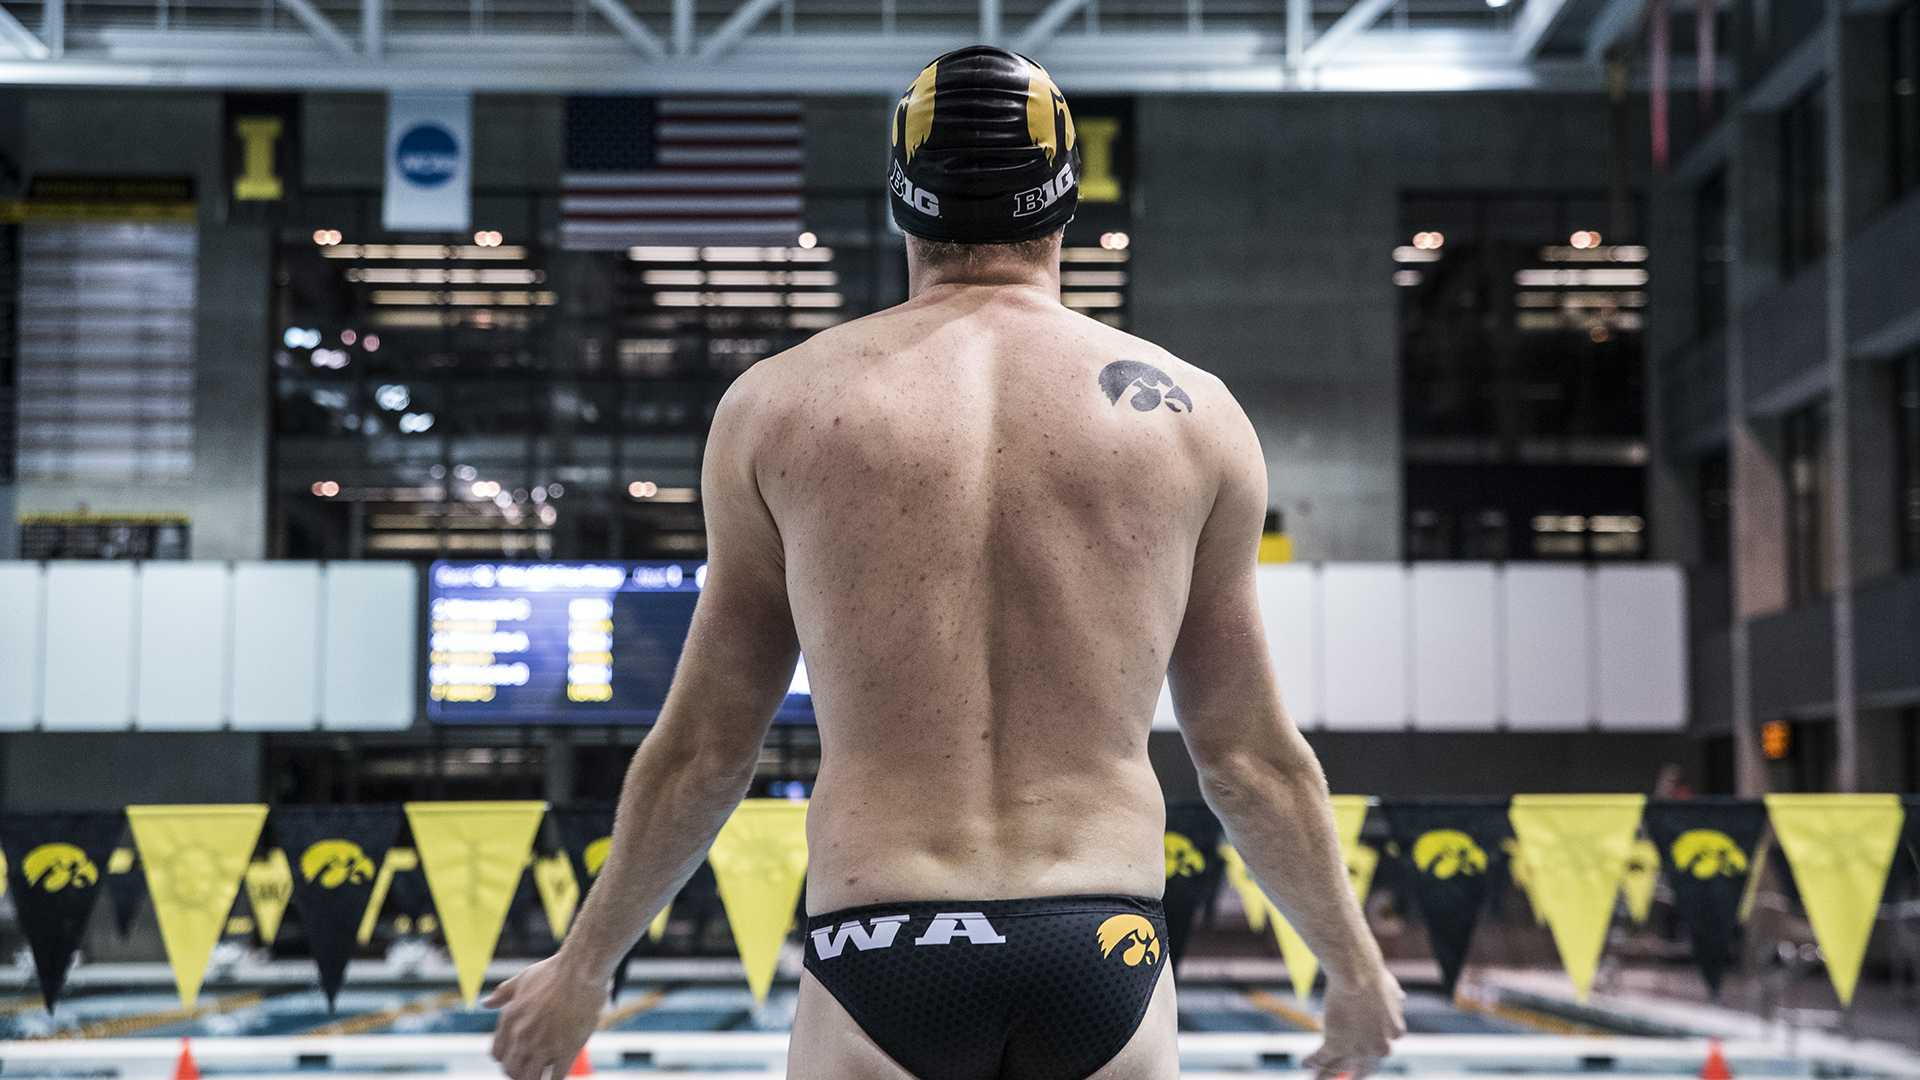 during the Senior Day meet between Iowa and Minnesota at the Campus Recreation and Wellness Center on Friday, Oct. 27, 2017. The Iowa men's swimming team beat the 21st ranked Minnesota Golden Gophers 168-132. (Ben Smith/The Daily Iowan)